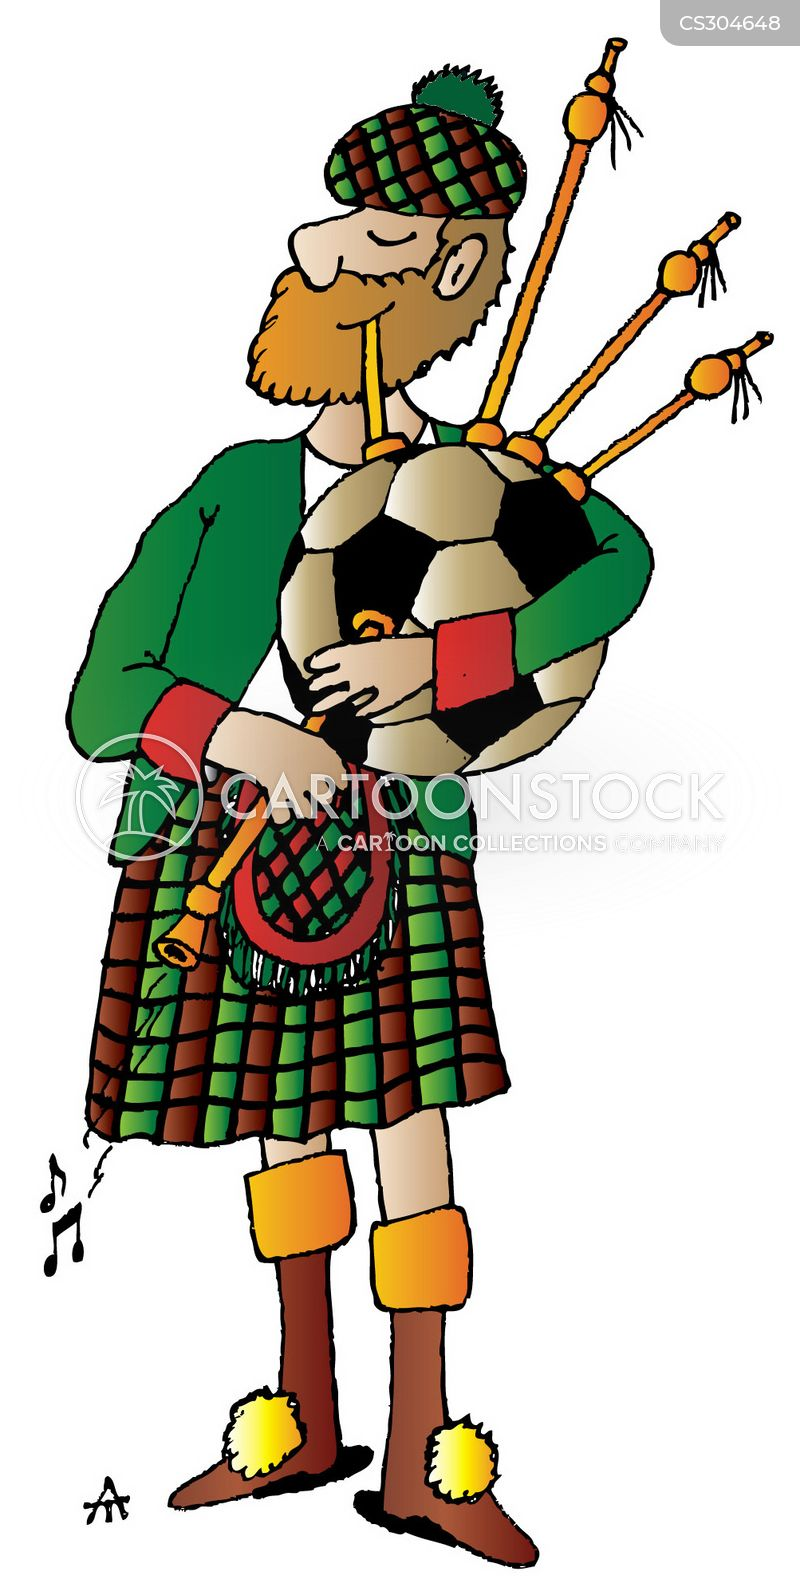 Kilts Cartoon, Kilts Cartoons, Kilts Bild, Kilts Bilder, Kilts Karikatur, Kilts Karikaturen, Kilts Illustration, Kilts Illustrationen, Kilts Witzzeichnung, Kilts Witzzeichnungen